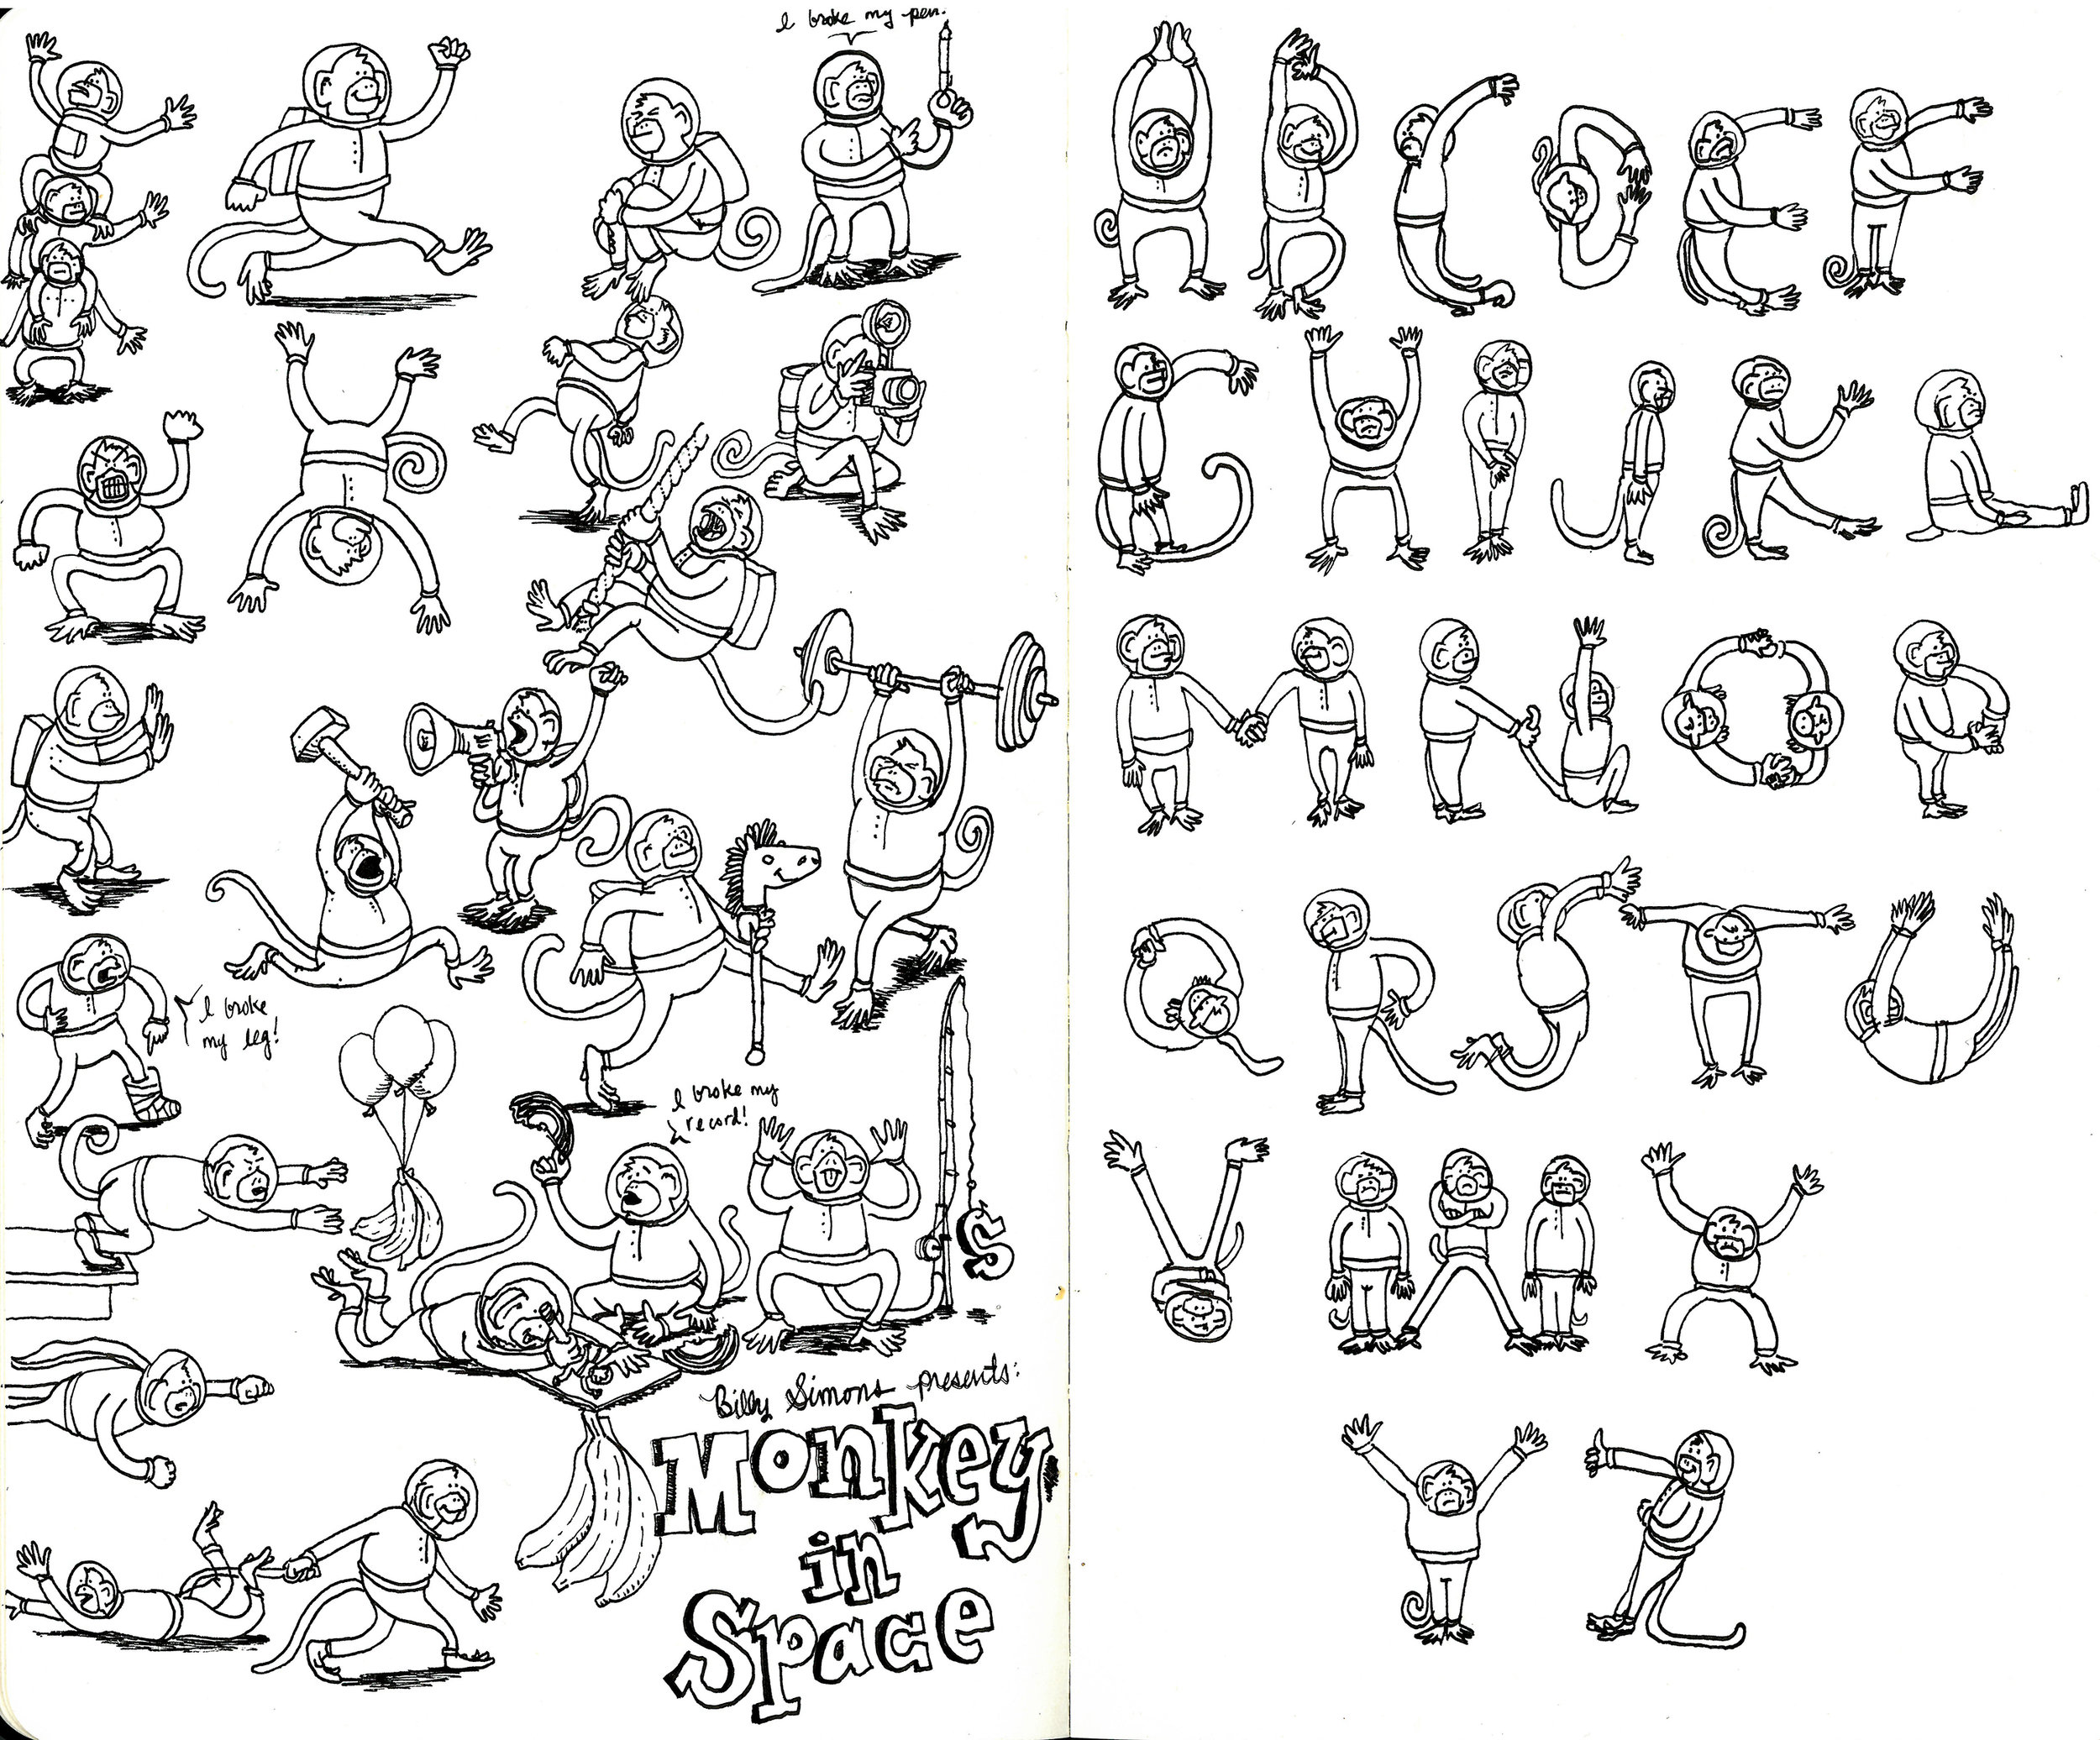 billy simons monkeys in space alphabet